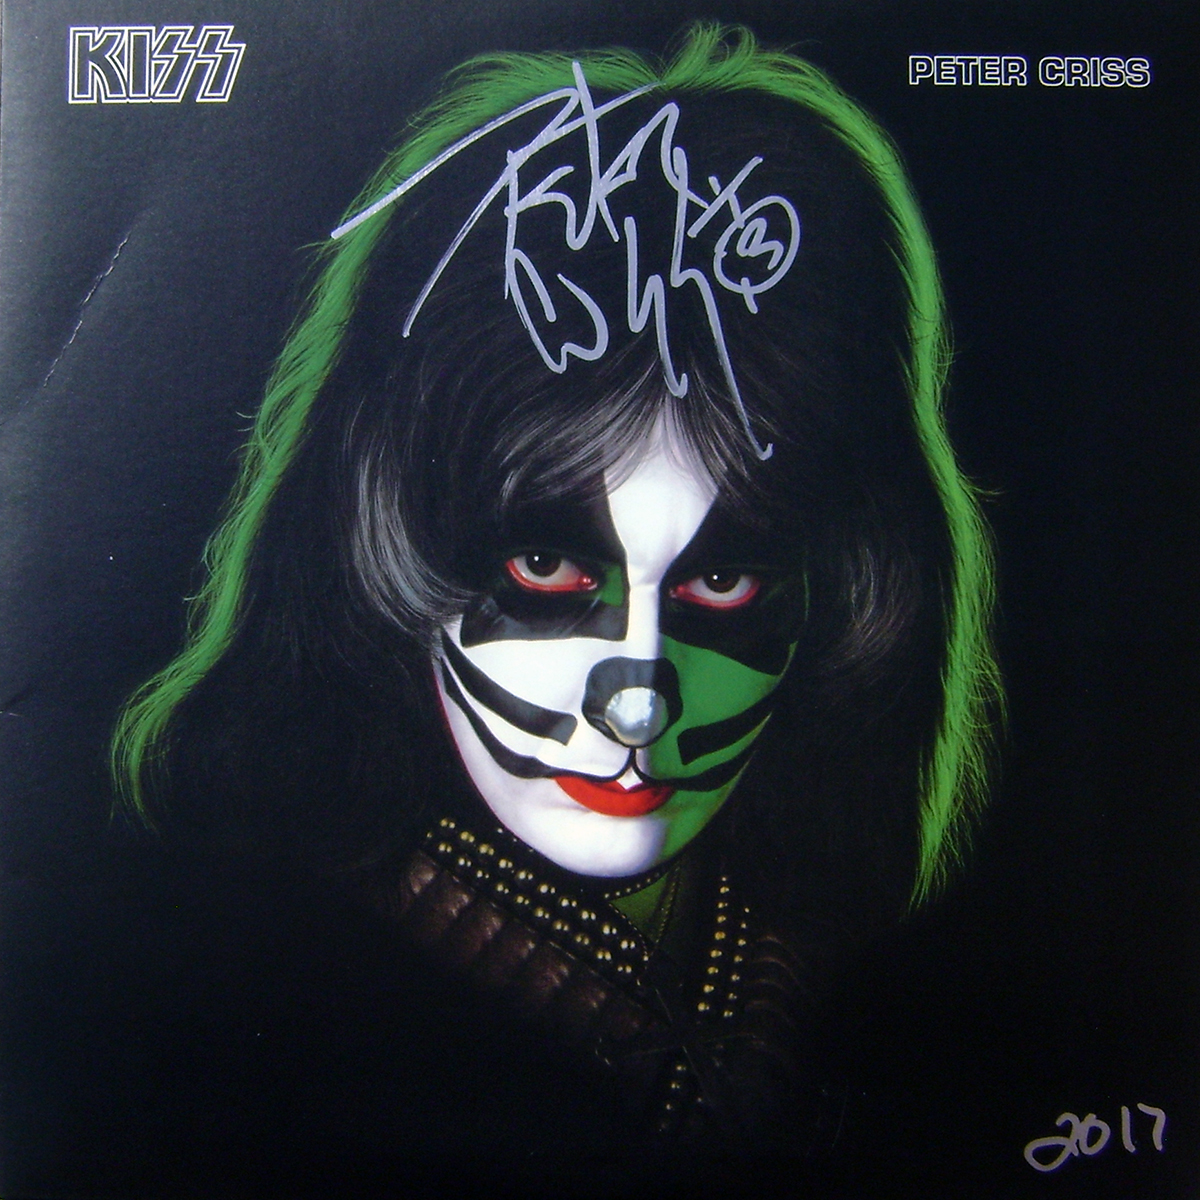 Peter Criss - Solo Album #2